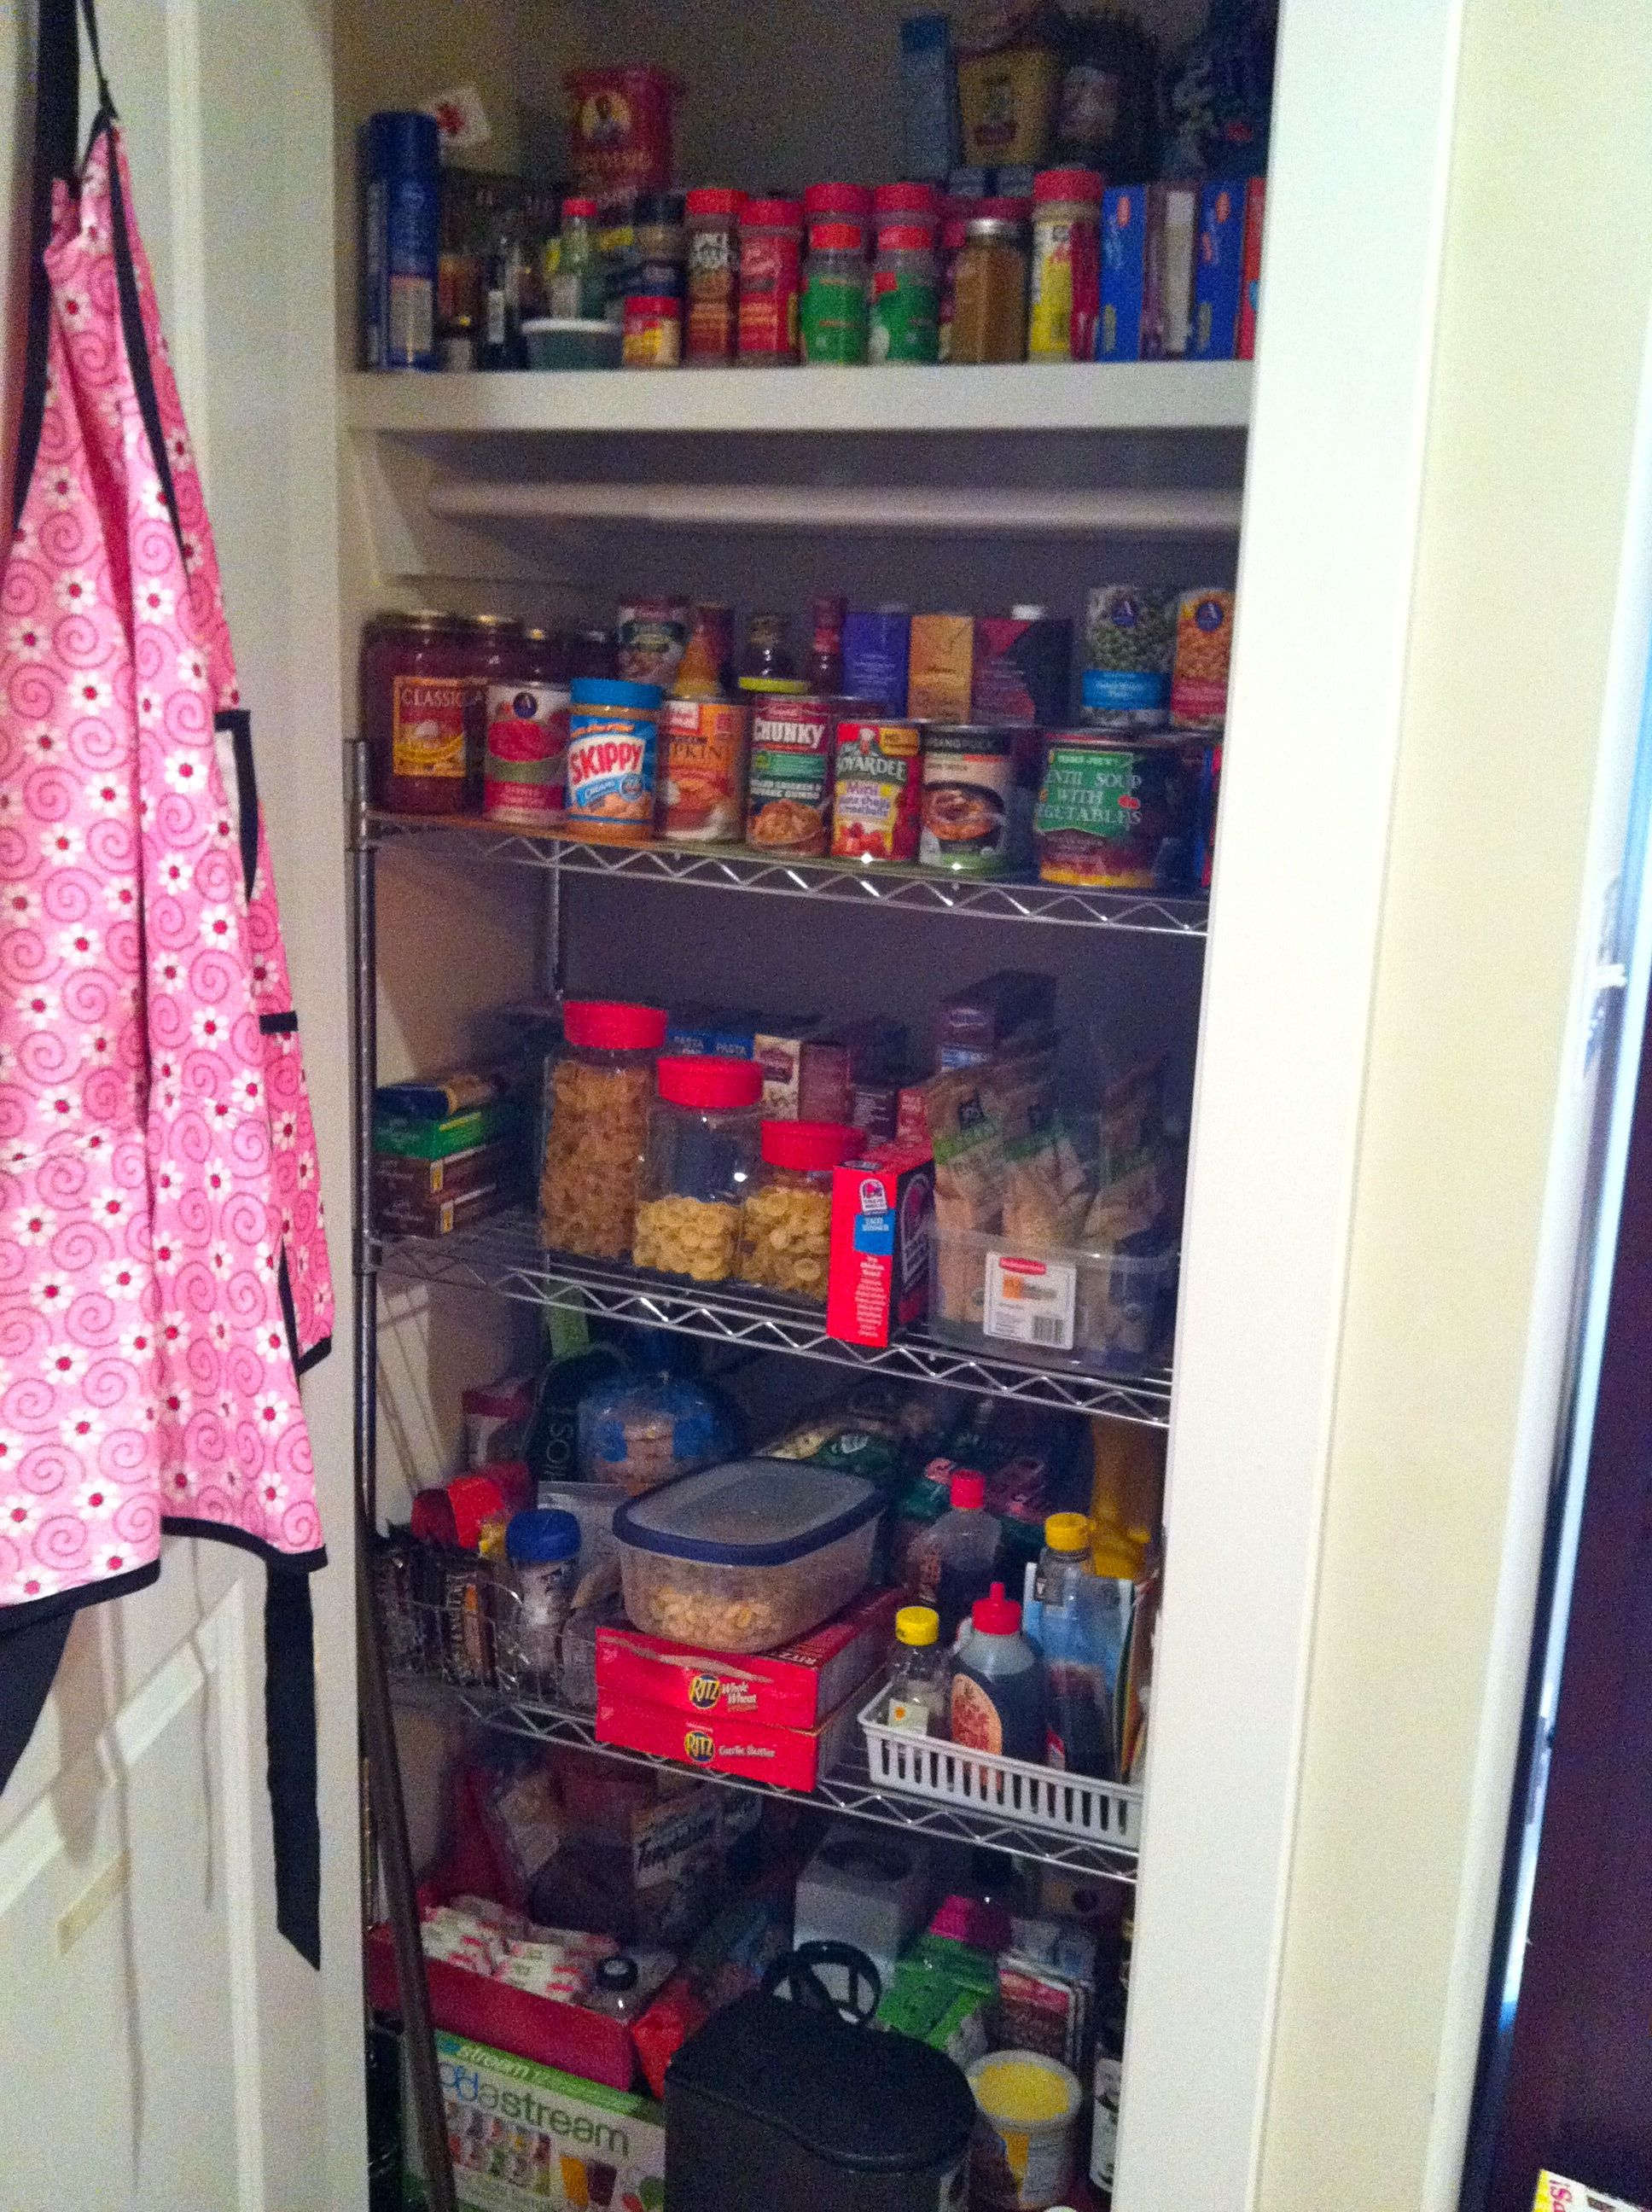 Turn An Unwanted Coat Closet Into A Much Needed Pantry. Cheap Shelving From  Home Depot U0026 Added Baskets And Boxes For Organization